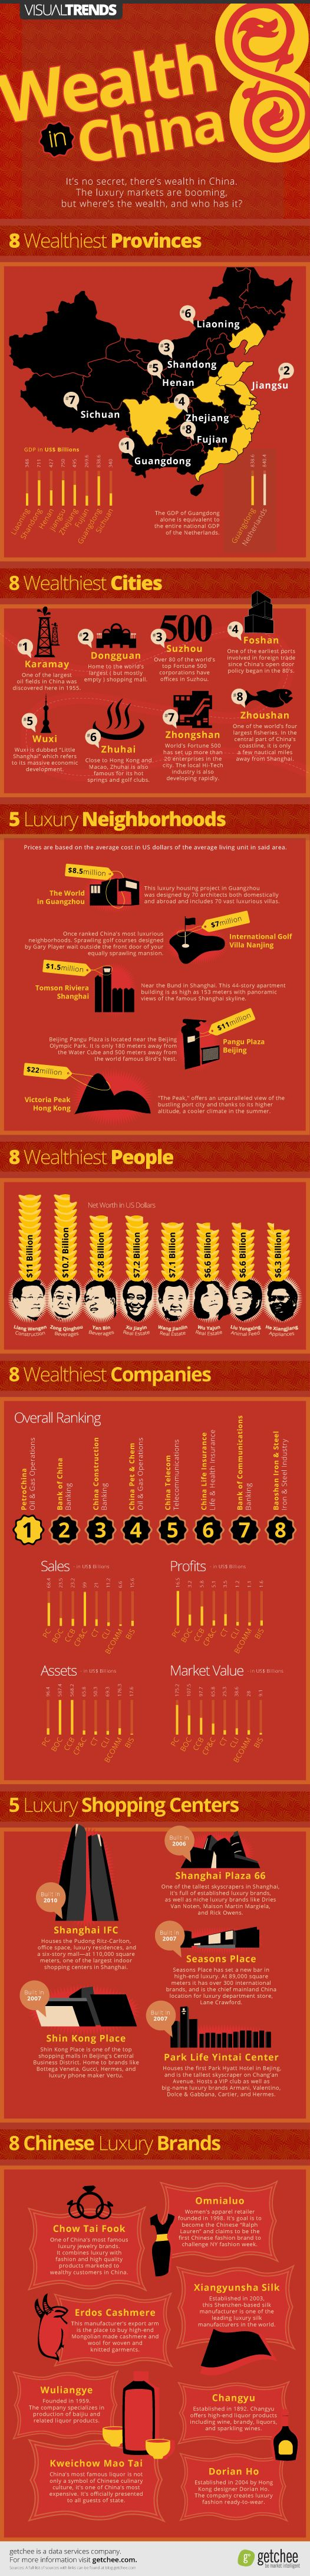 It's no secret, there's wealth in China. The luxury markets are booming, but where's the wealth, and who has it?